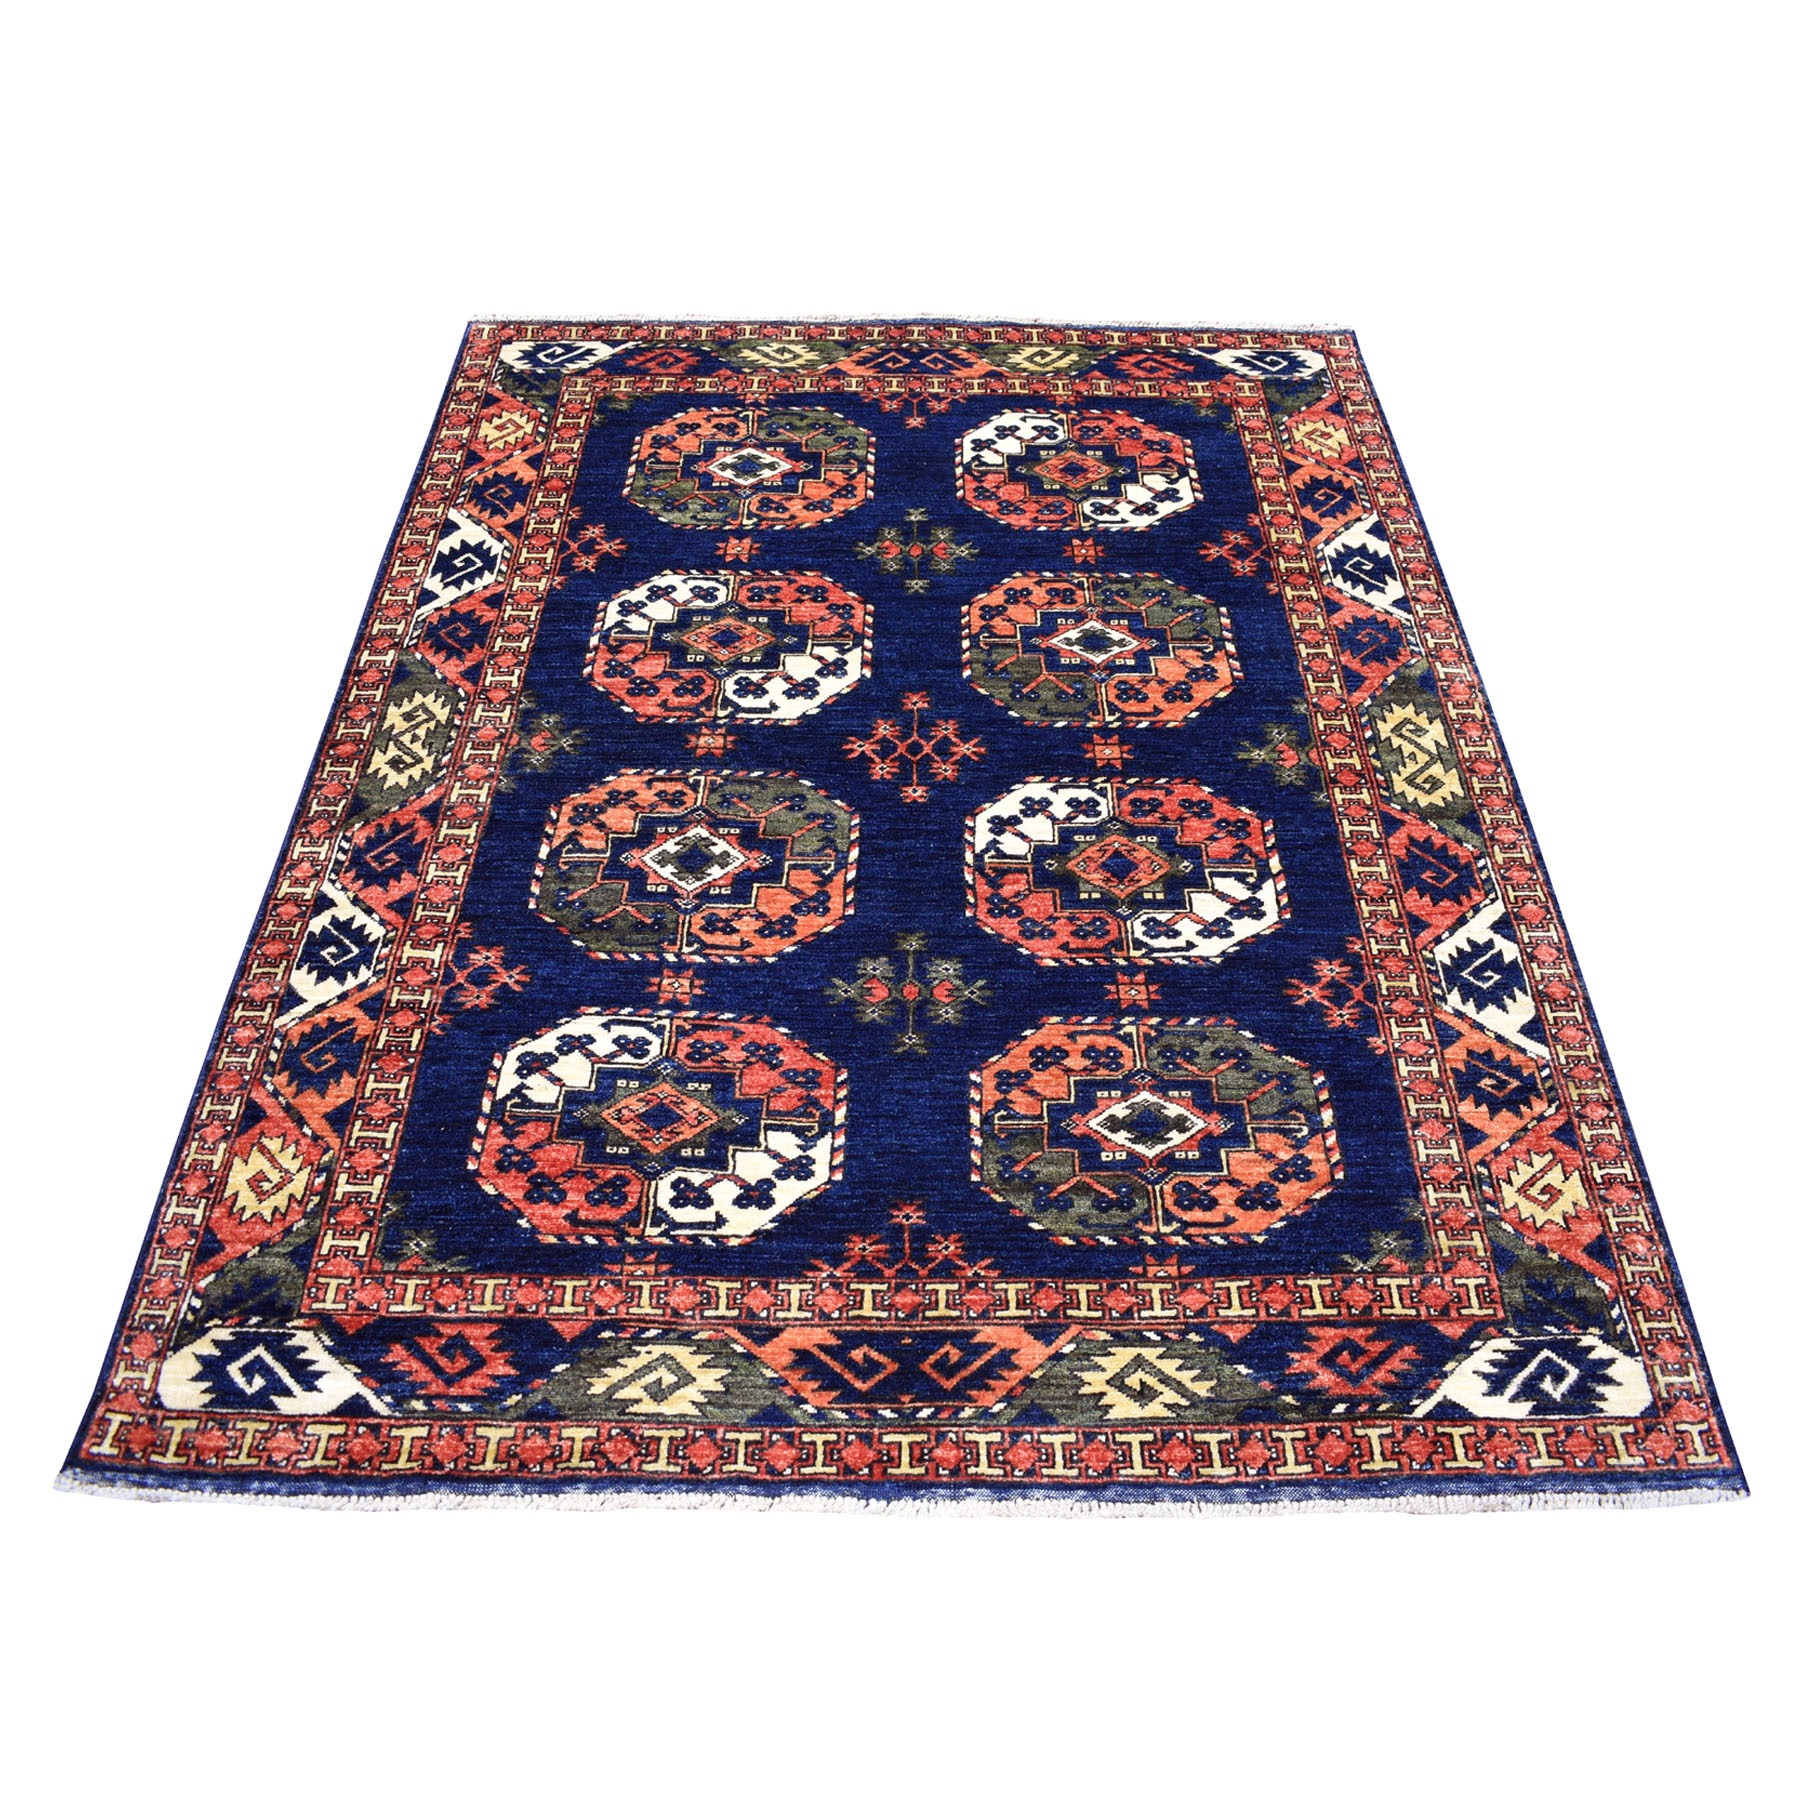 "5'x6'6"" Blue Elephant Feet Design Afghan Ersari Hand Knotted Pure Wool Oriental Rug"